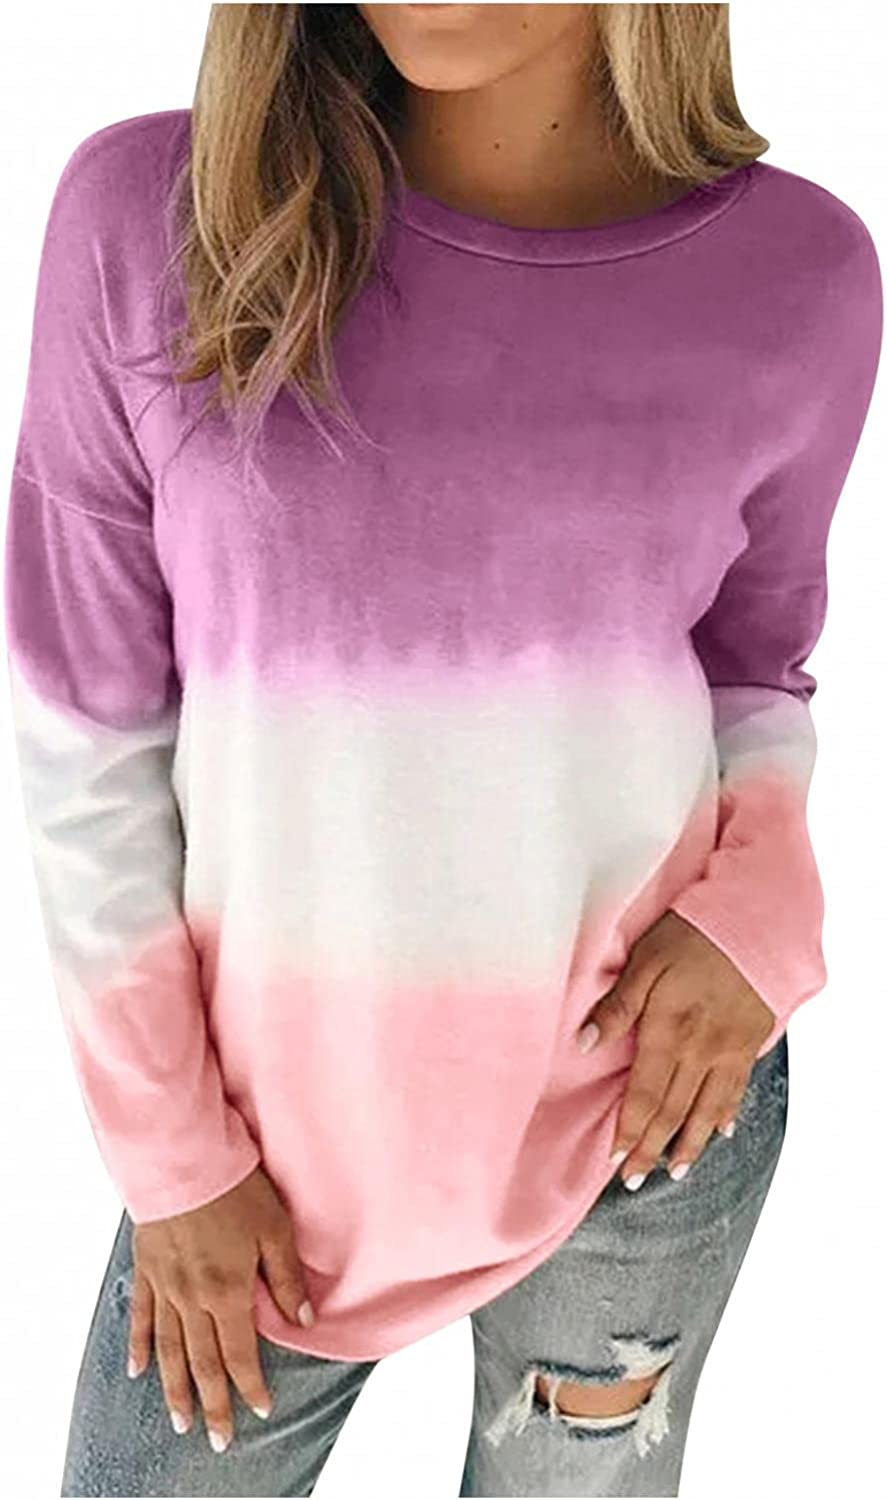 Sweatshirts for Women, Plus Pullover Oversized Vintage Graphic Long Sleeve Loose Sweatshirt Sweaters Tops Shirts